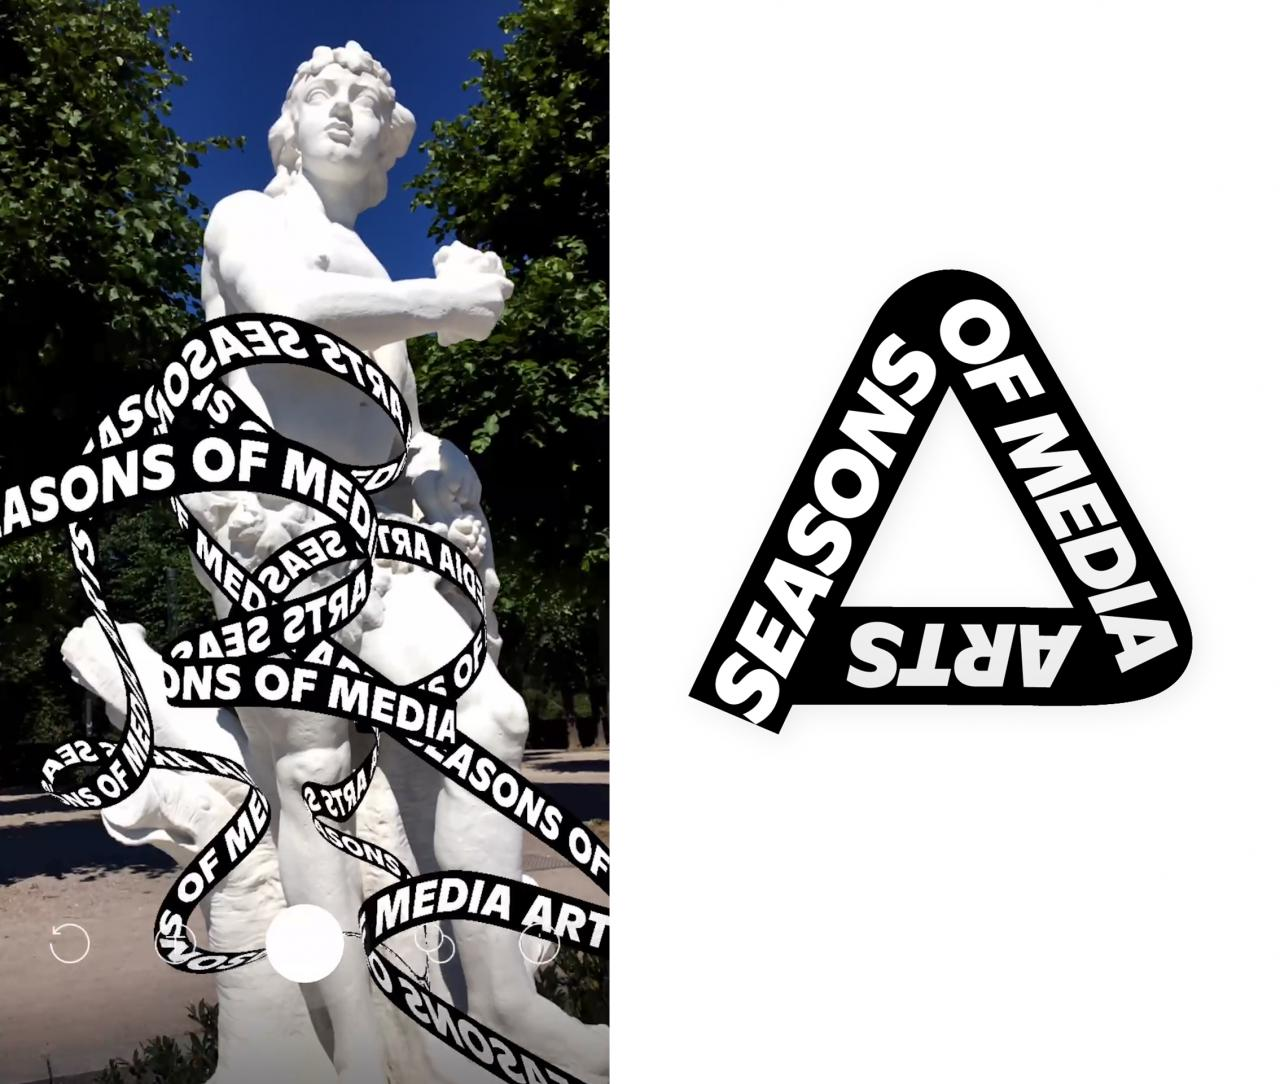 An antique statue of a man around which a virtual ribbon with lettering winds.